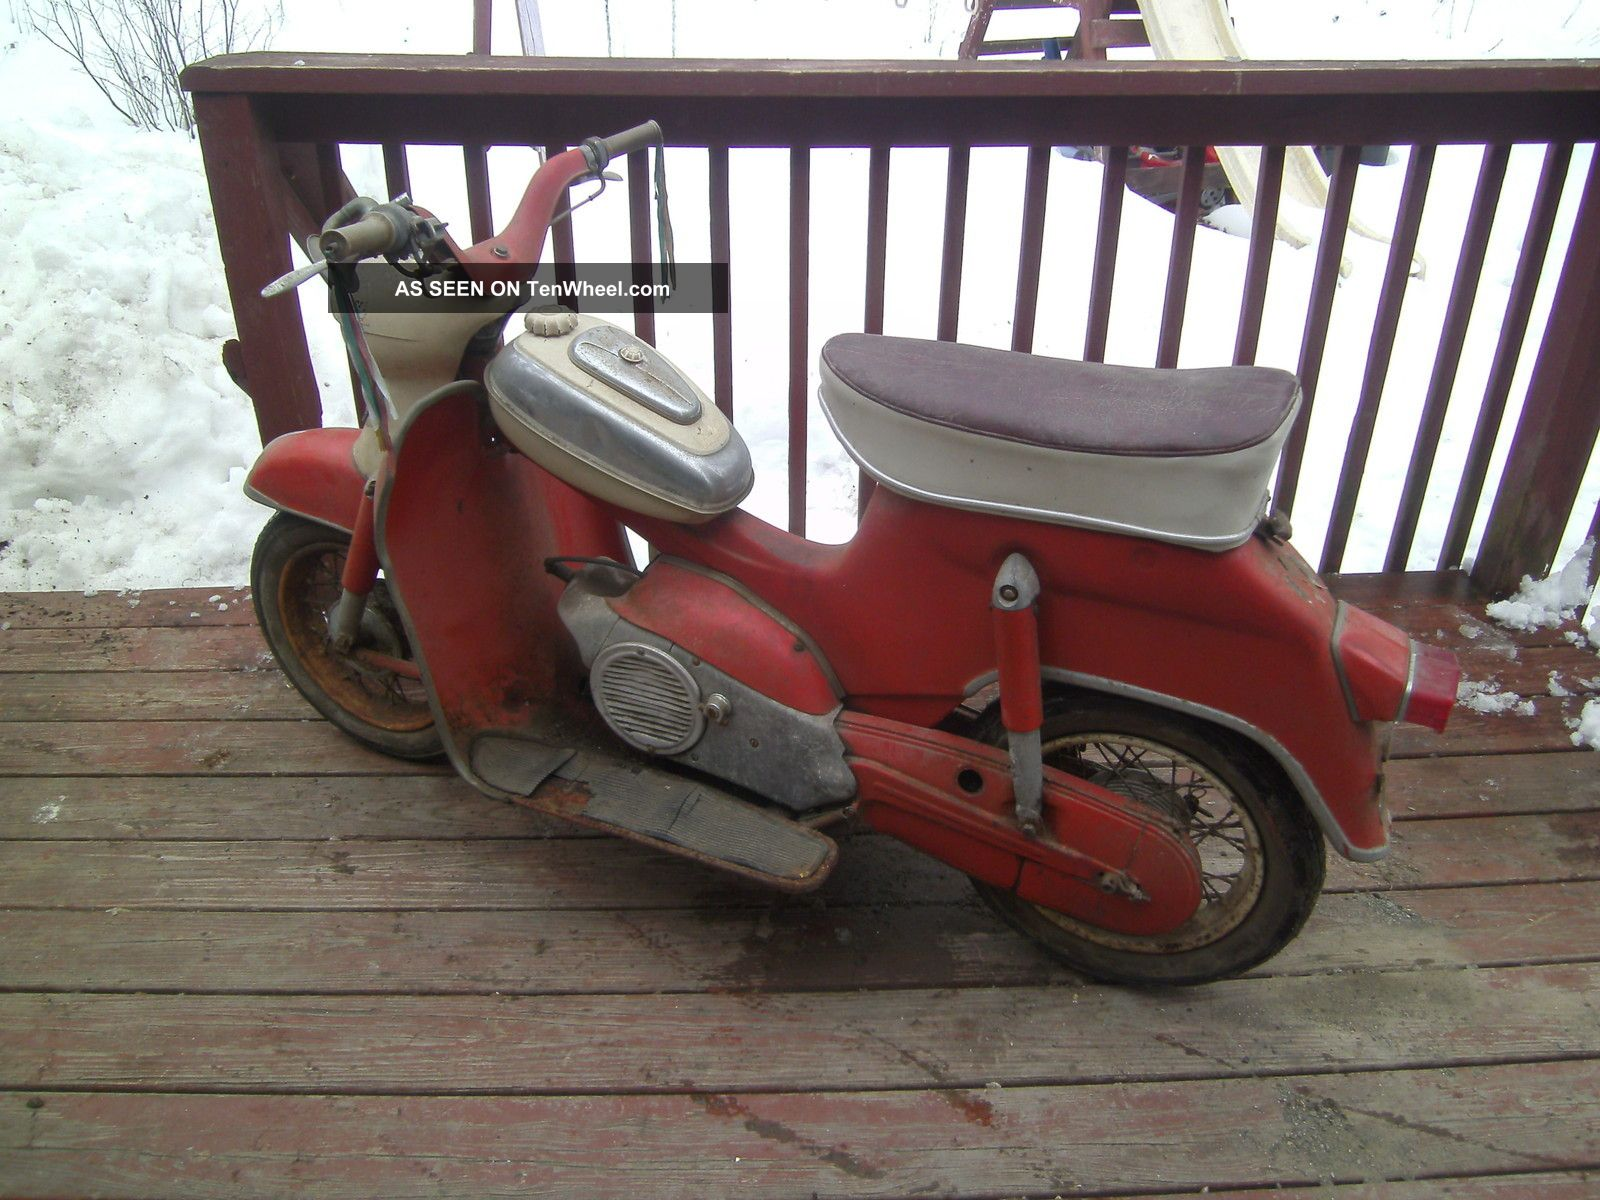 1957 Sears Puch Cycle 60 Cc Man Trans Scooter Rare Find Vintage Scooter 3 Speed Other Makes photo